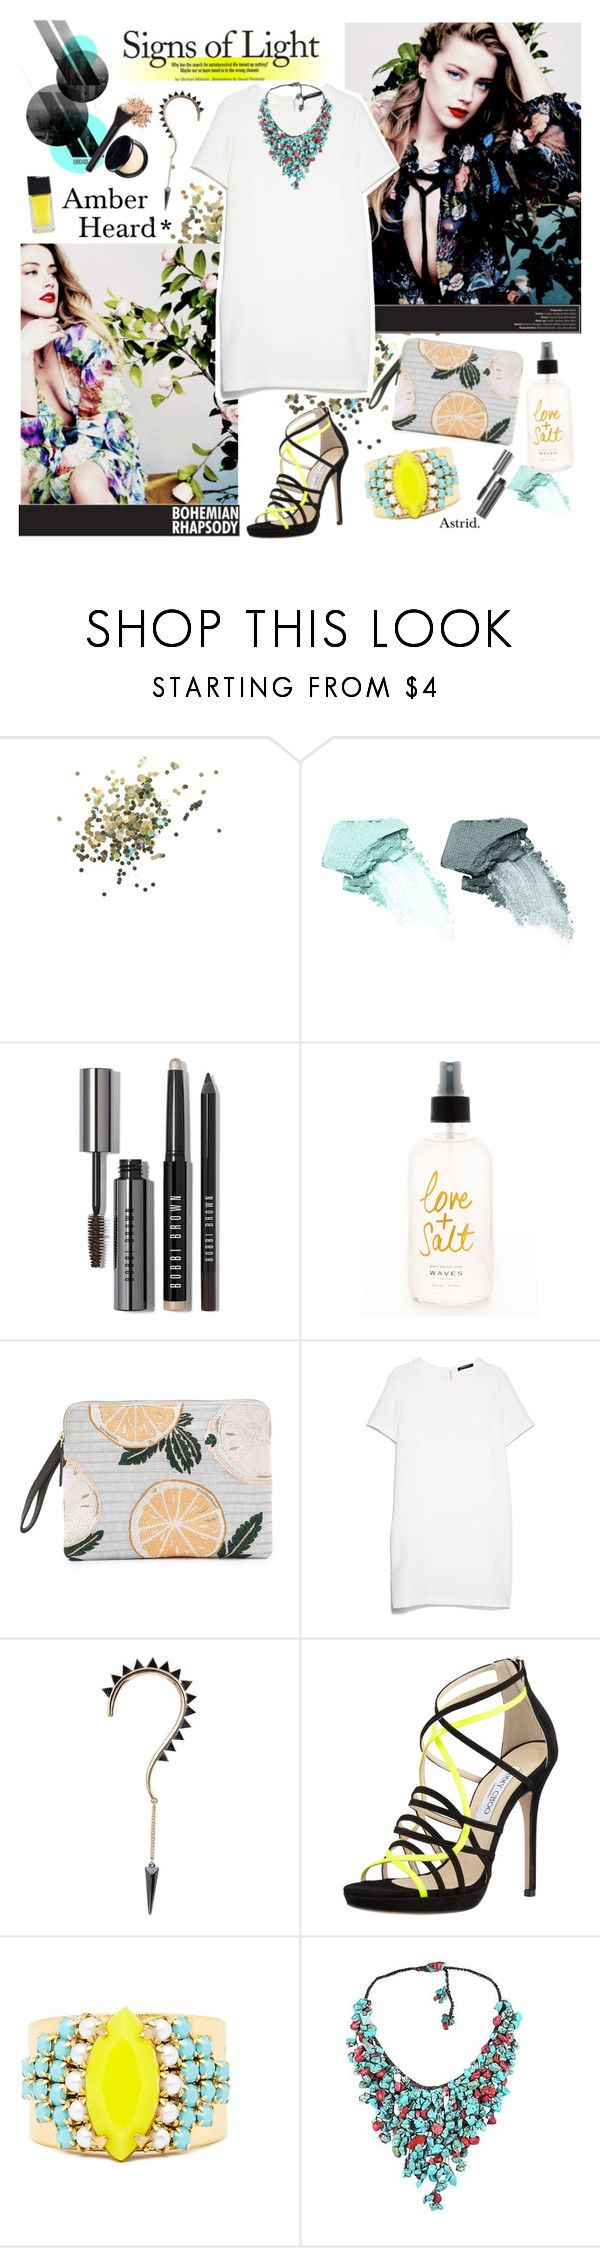 """""""Ambre Heard*"""" by askriiid ❤ liked on Polyvore featuring Topshop, NARS Cosmetics, Bobbi Brown Cosmetics, Lizzie Fortunato, MANGO, Jimmy Choo, Sandy Hyun, AeraVida and HOTmakeup"""